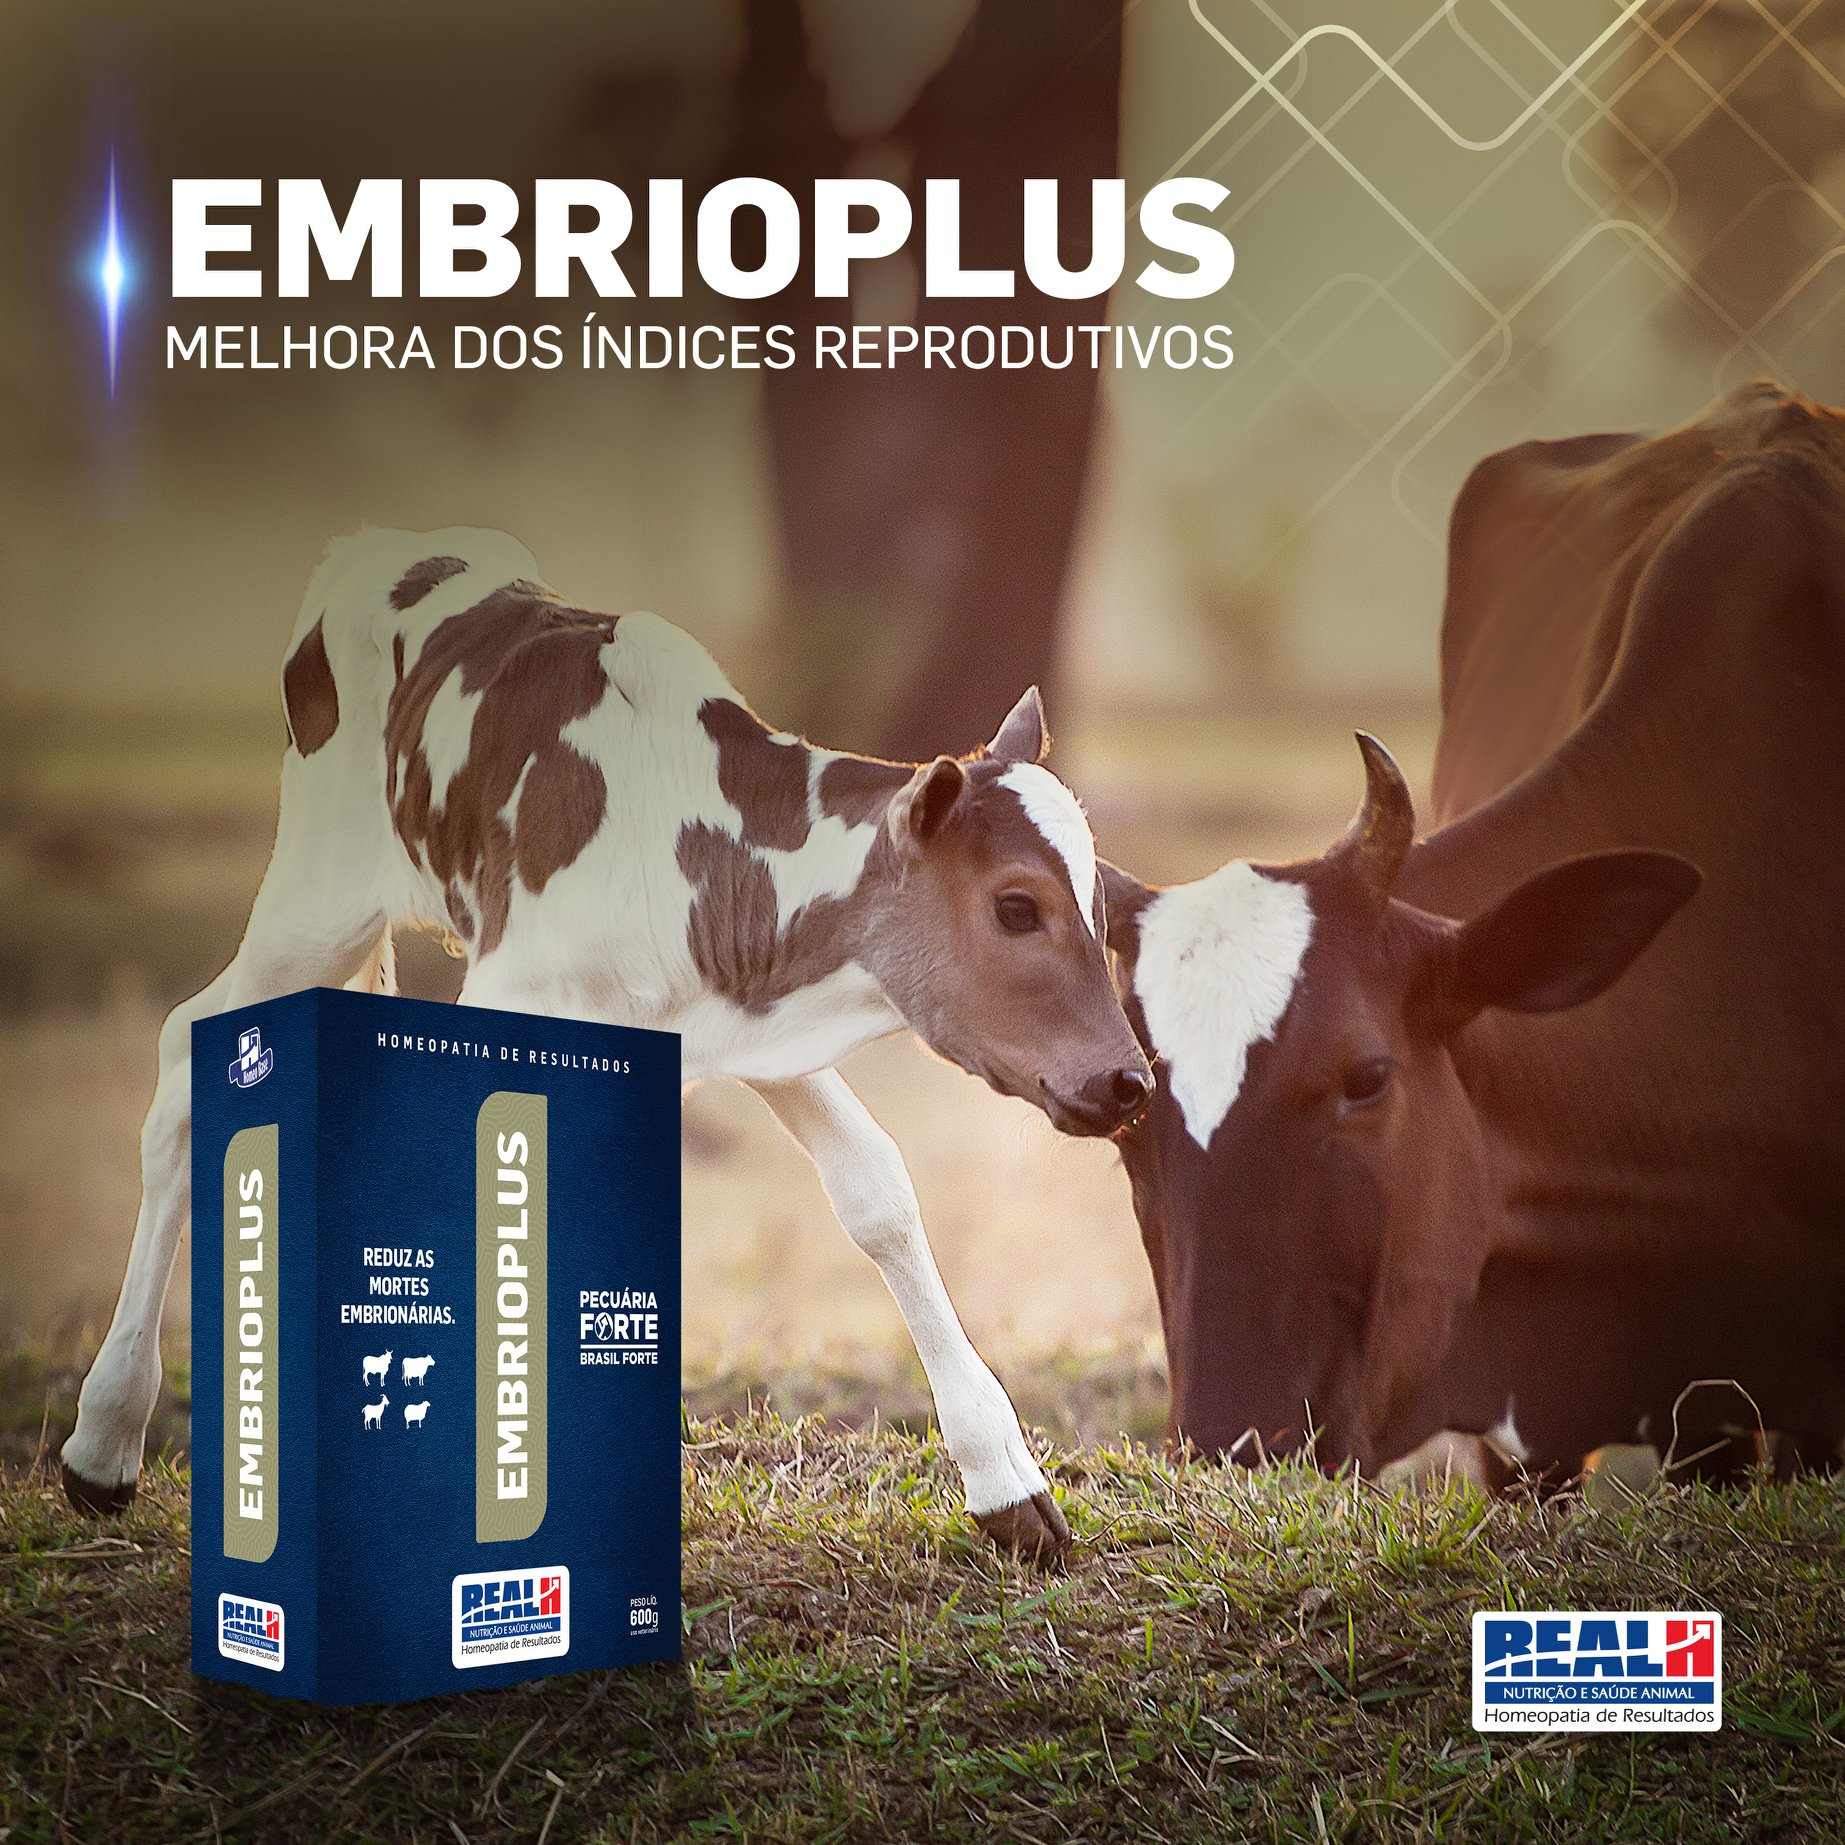 Embrioplus Real H